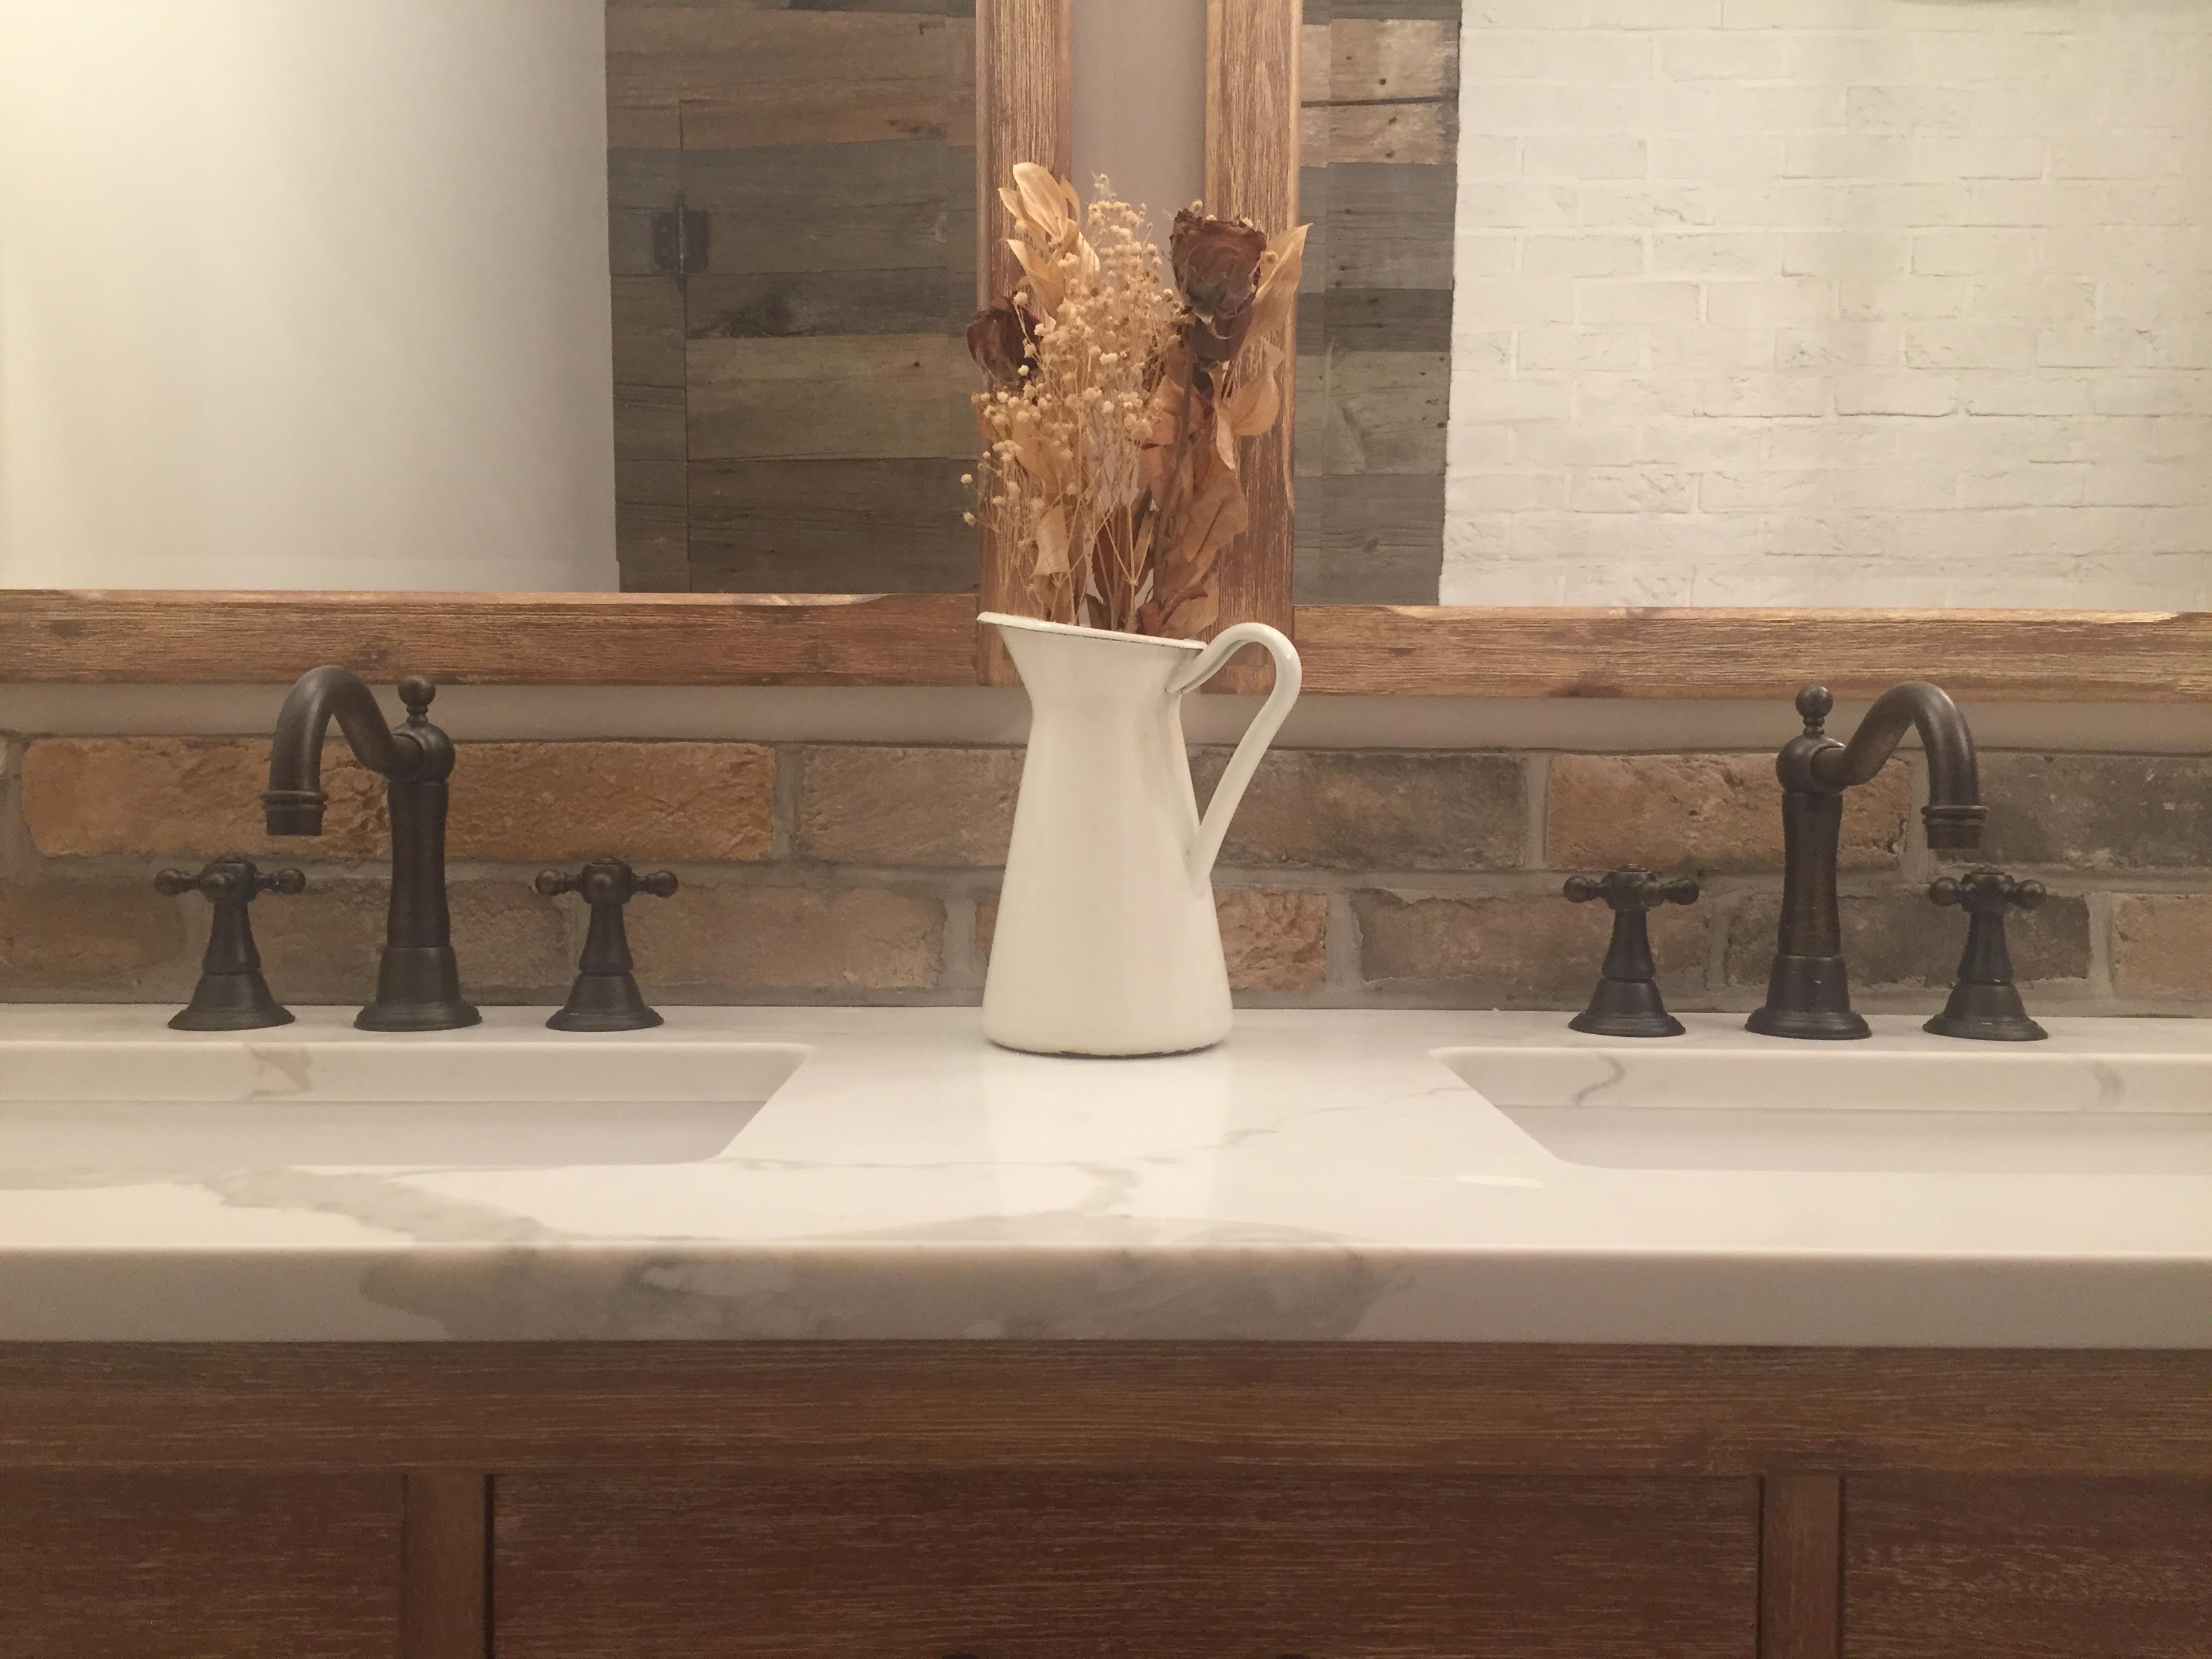 Vanity Faucets